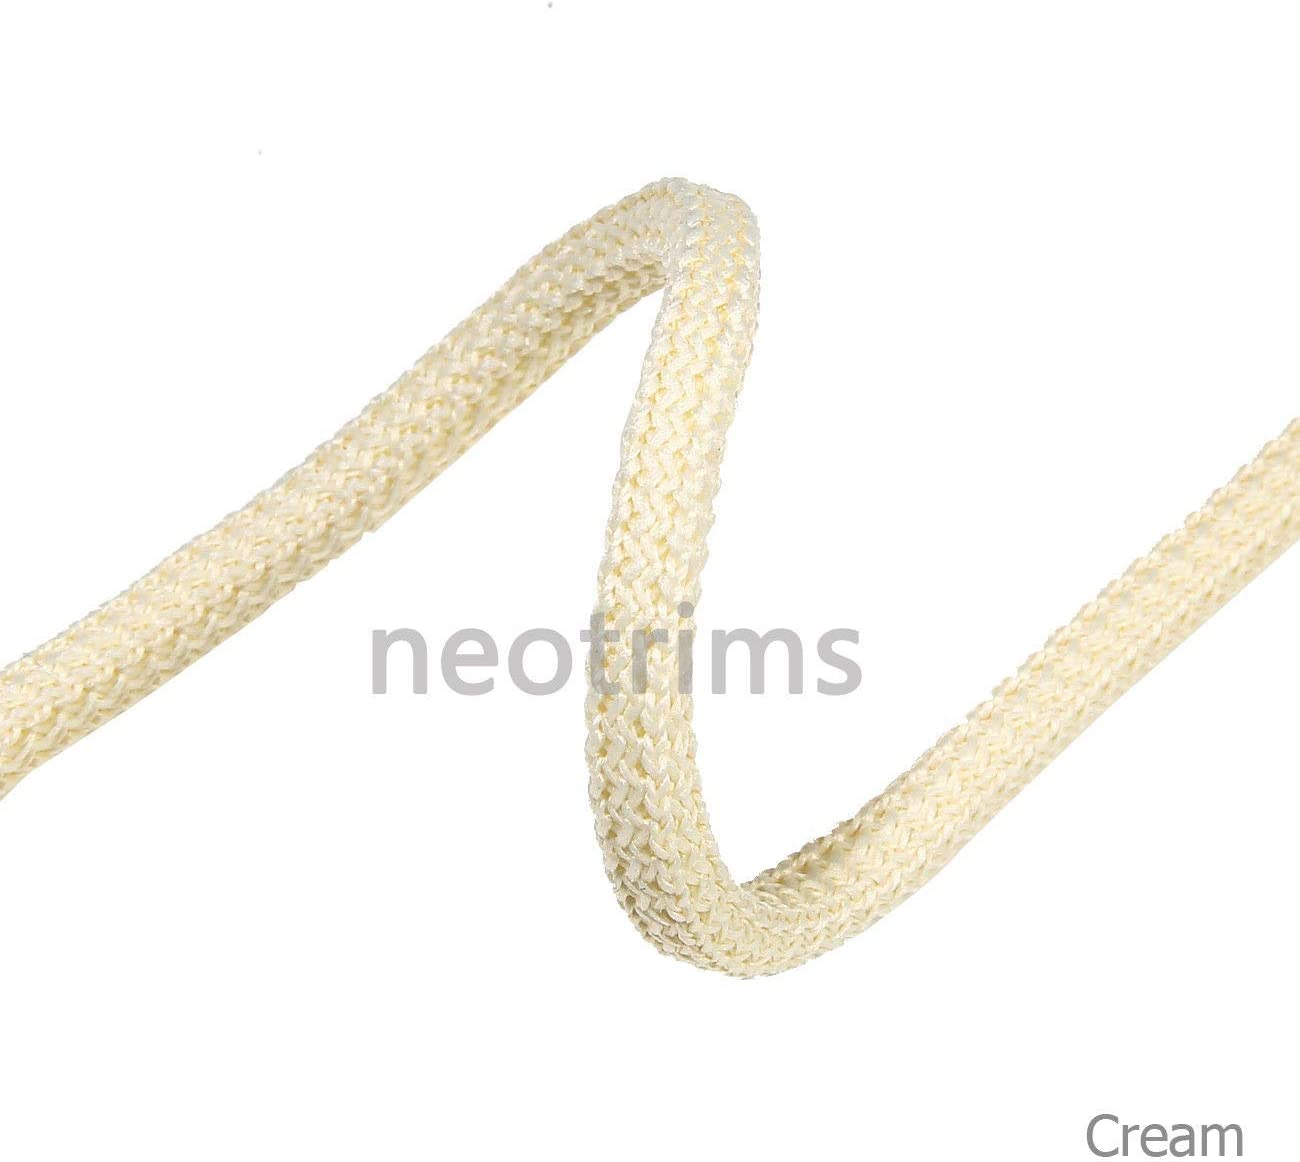 Padded Square i Cord Texture,Hoody Trimming,Sweatshirts,Garments,Apparel Crafts 6mm Cushion Piping 21 Colours Drawstring Hoodie Braided Cord Rope Trim Strong,Slight Stretch,Soft Handle,Neotrims